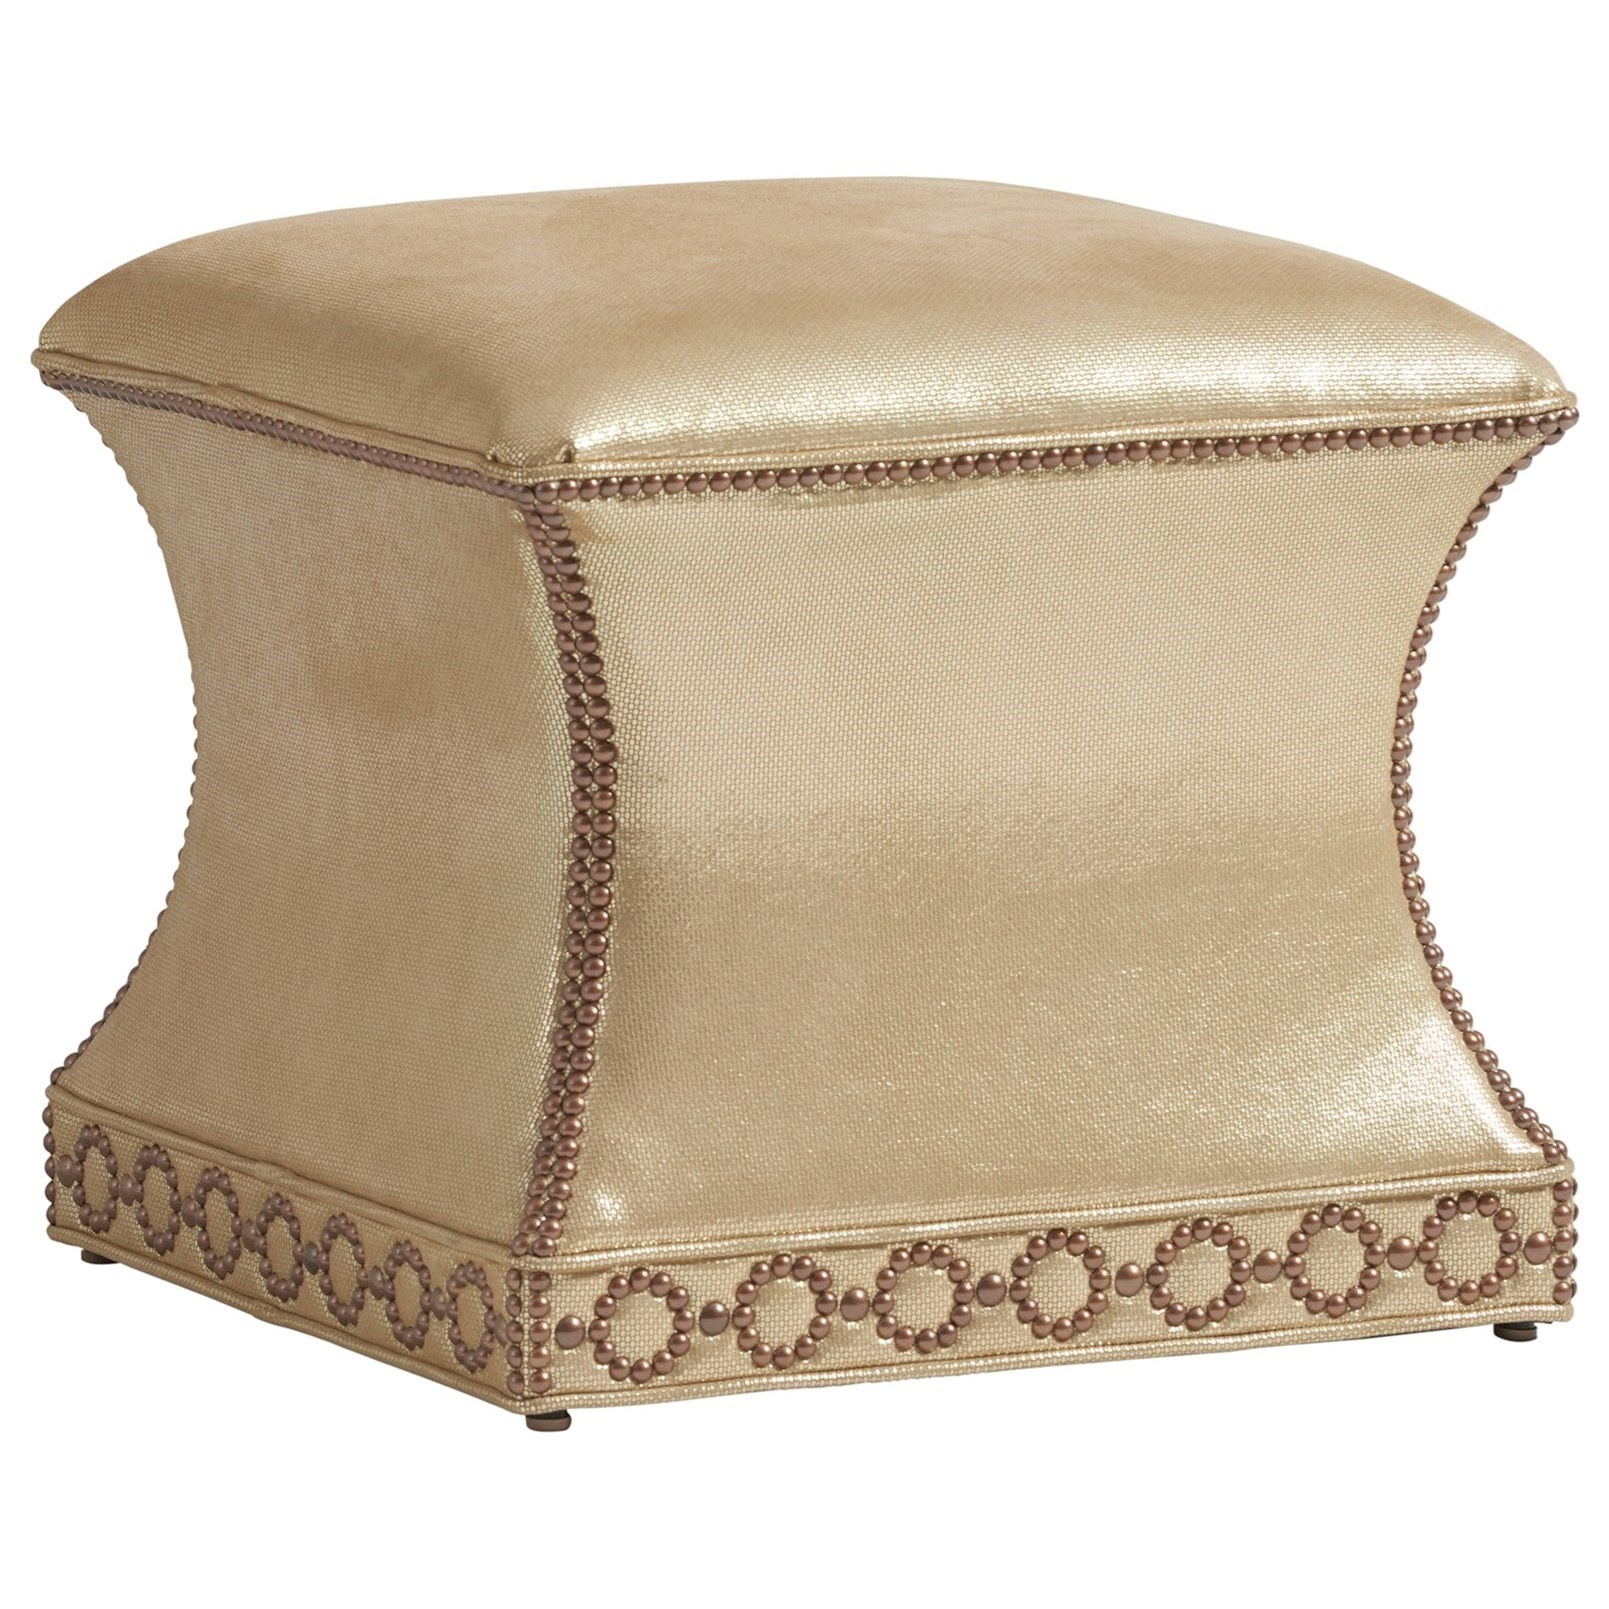 Carlyle Merino Ottoman by Lexington at Baer's Furniture